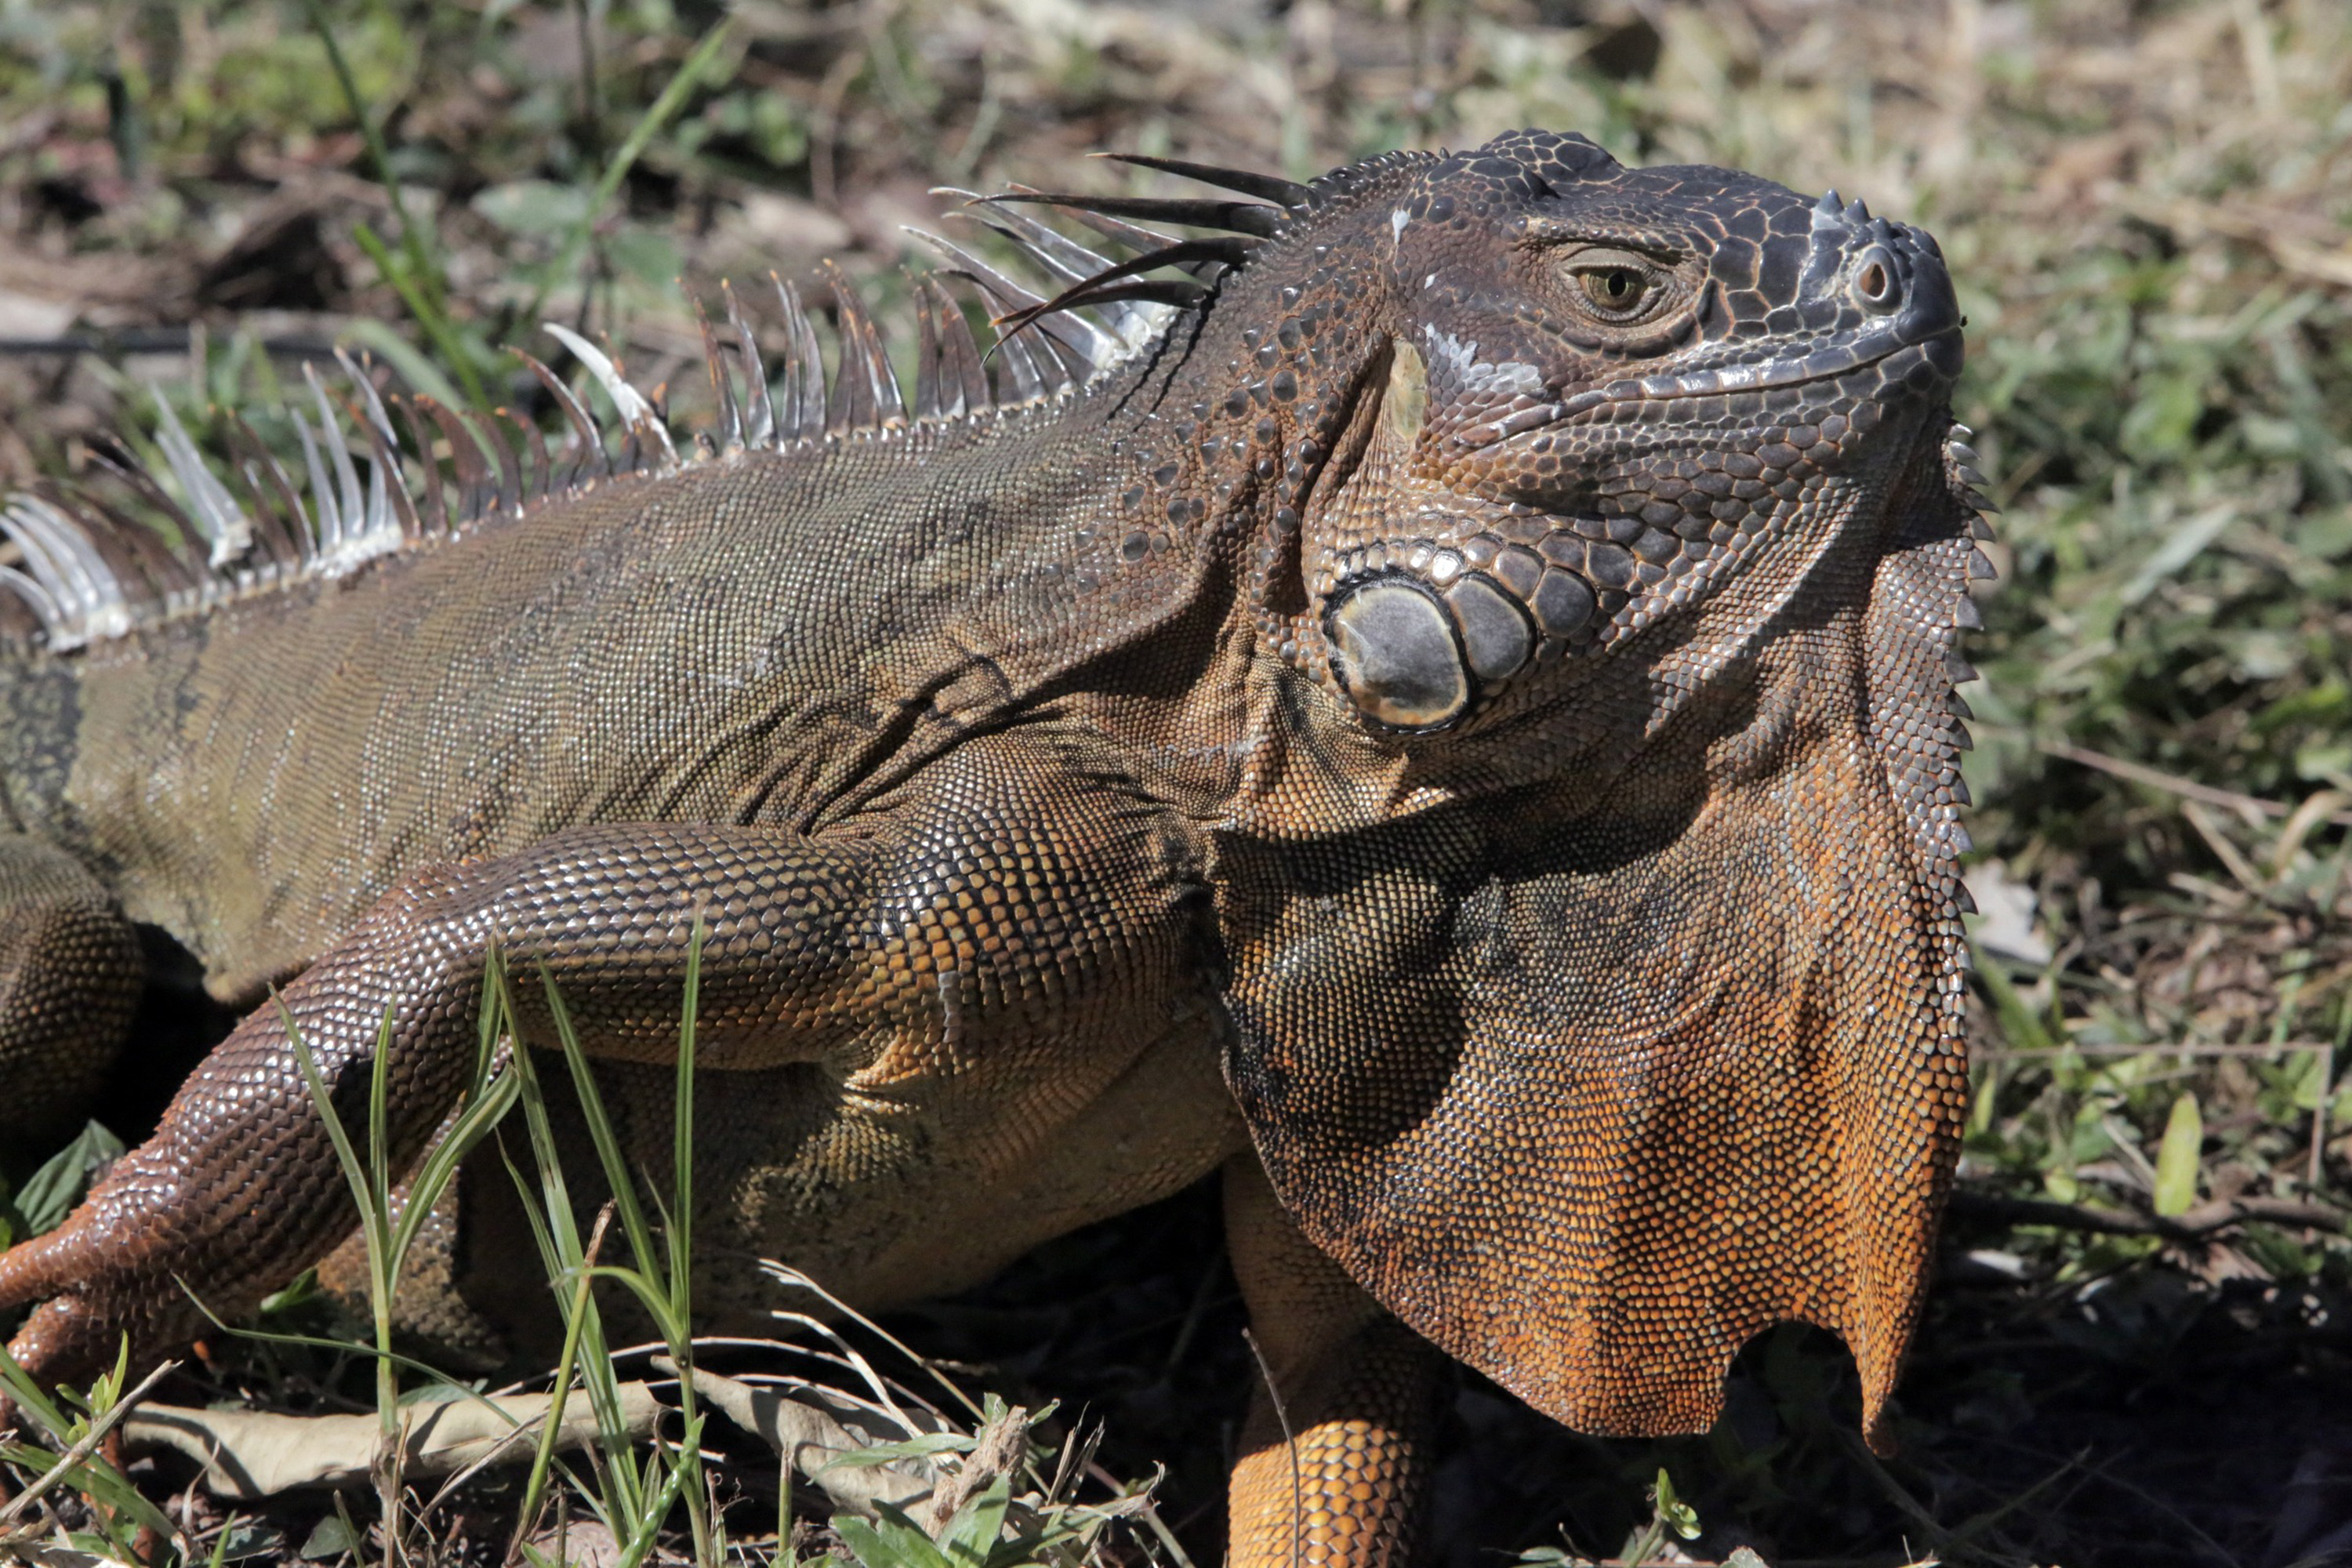 Snow-covered beaches? Chilly iguanas? They are part of a mysterious âholeâ in global warming